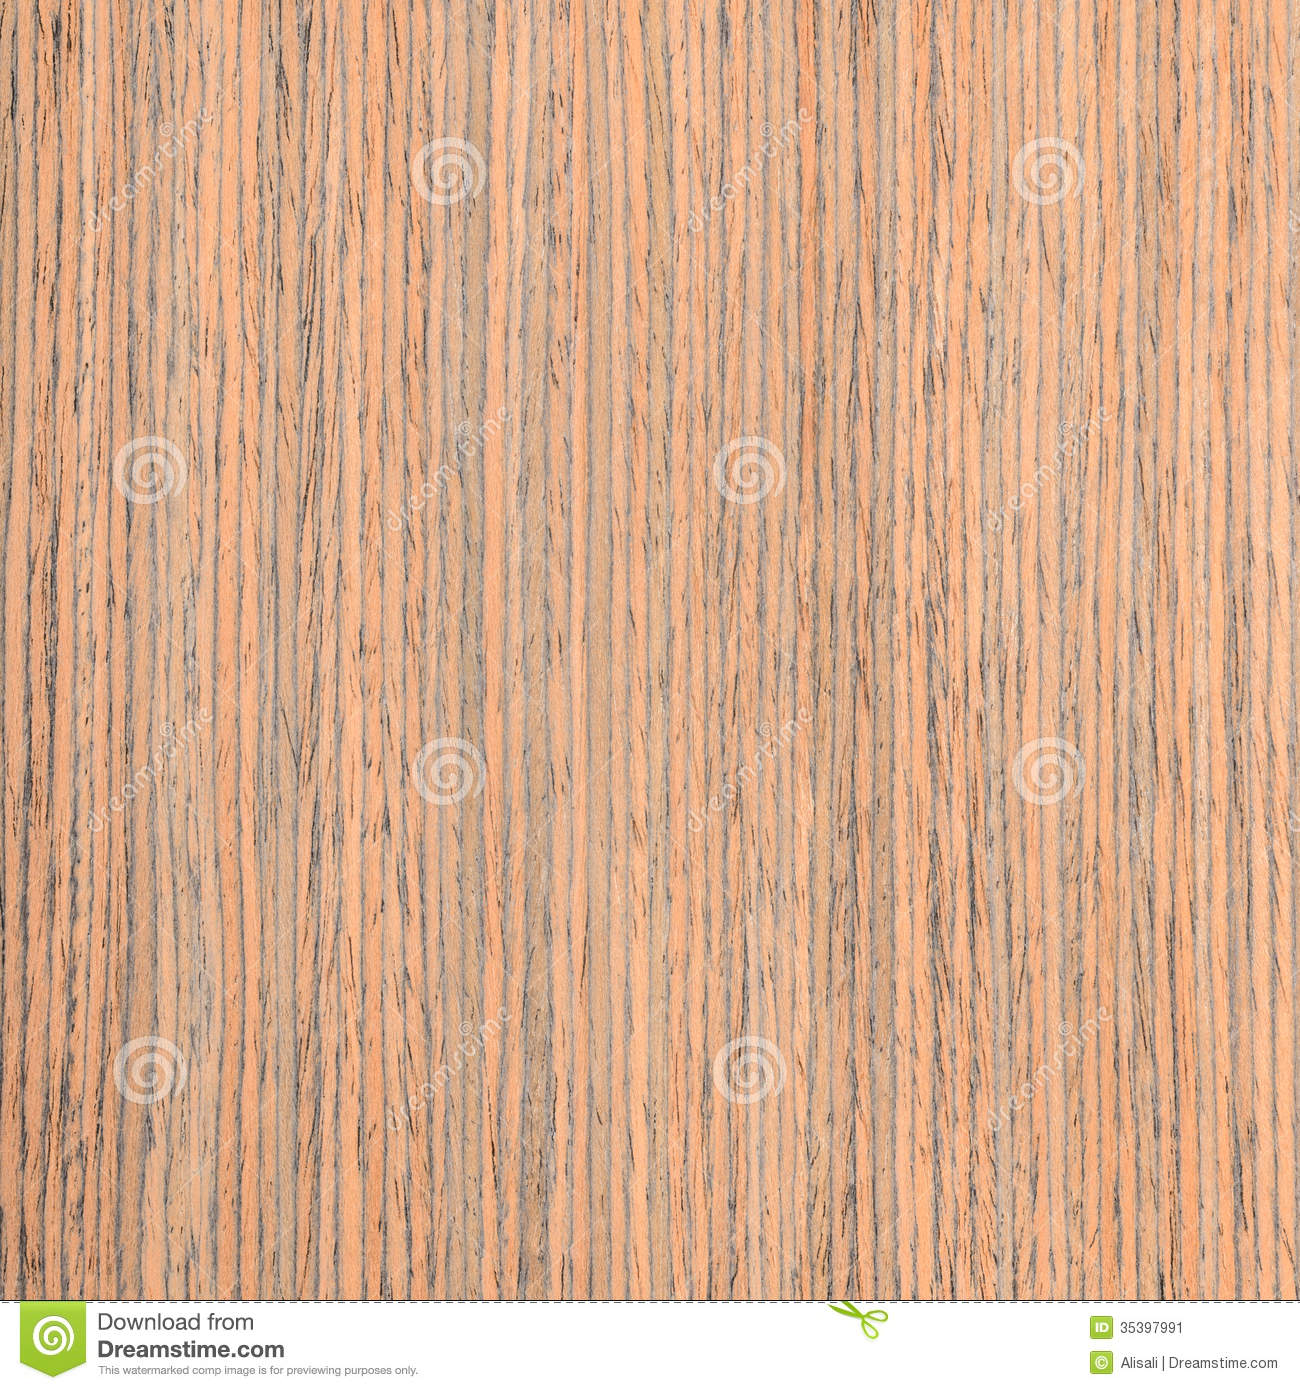 Texture Walnut, Wood Veneer Stock Image - Image: 35397991